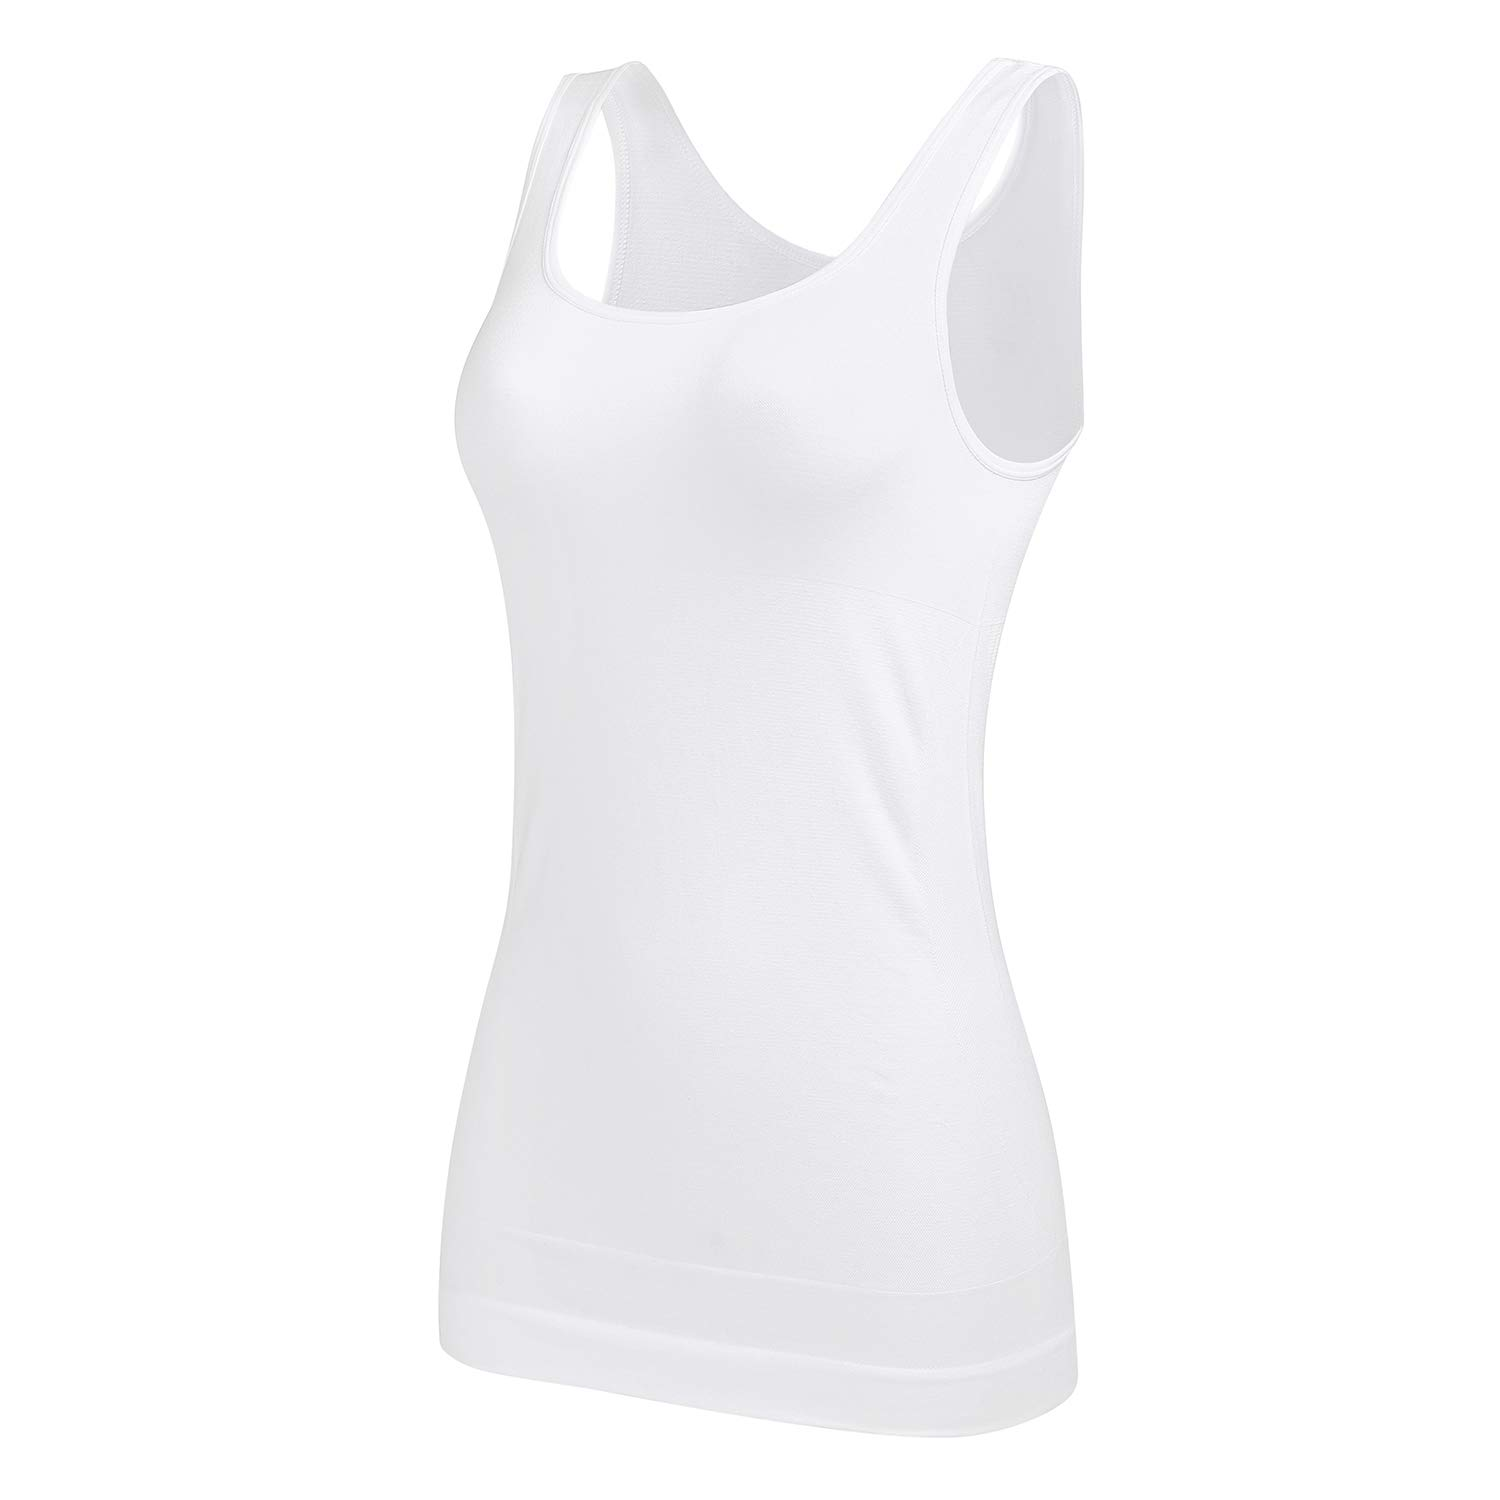 Womens Shapewear Tank Tops Plus Size Firm Tummy Control Cami Seamless Slimming Shaping Tops